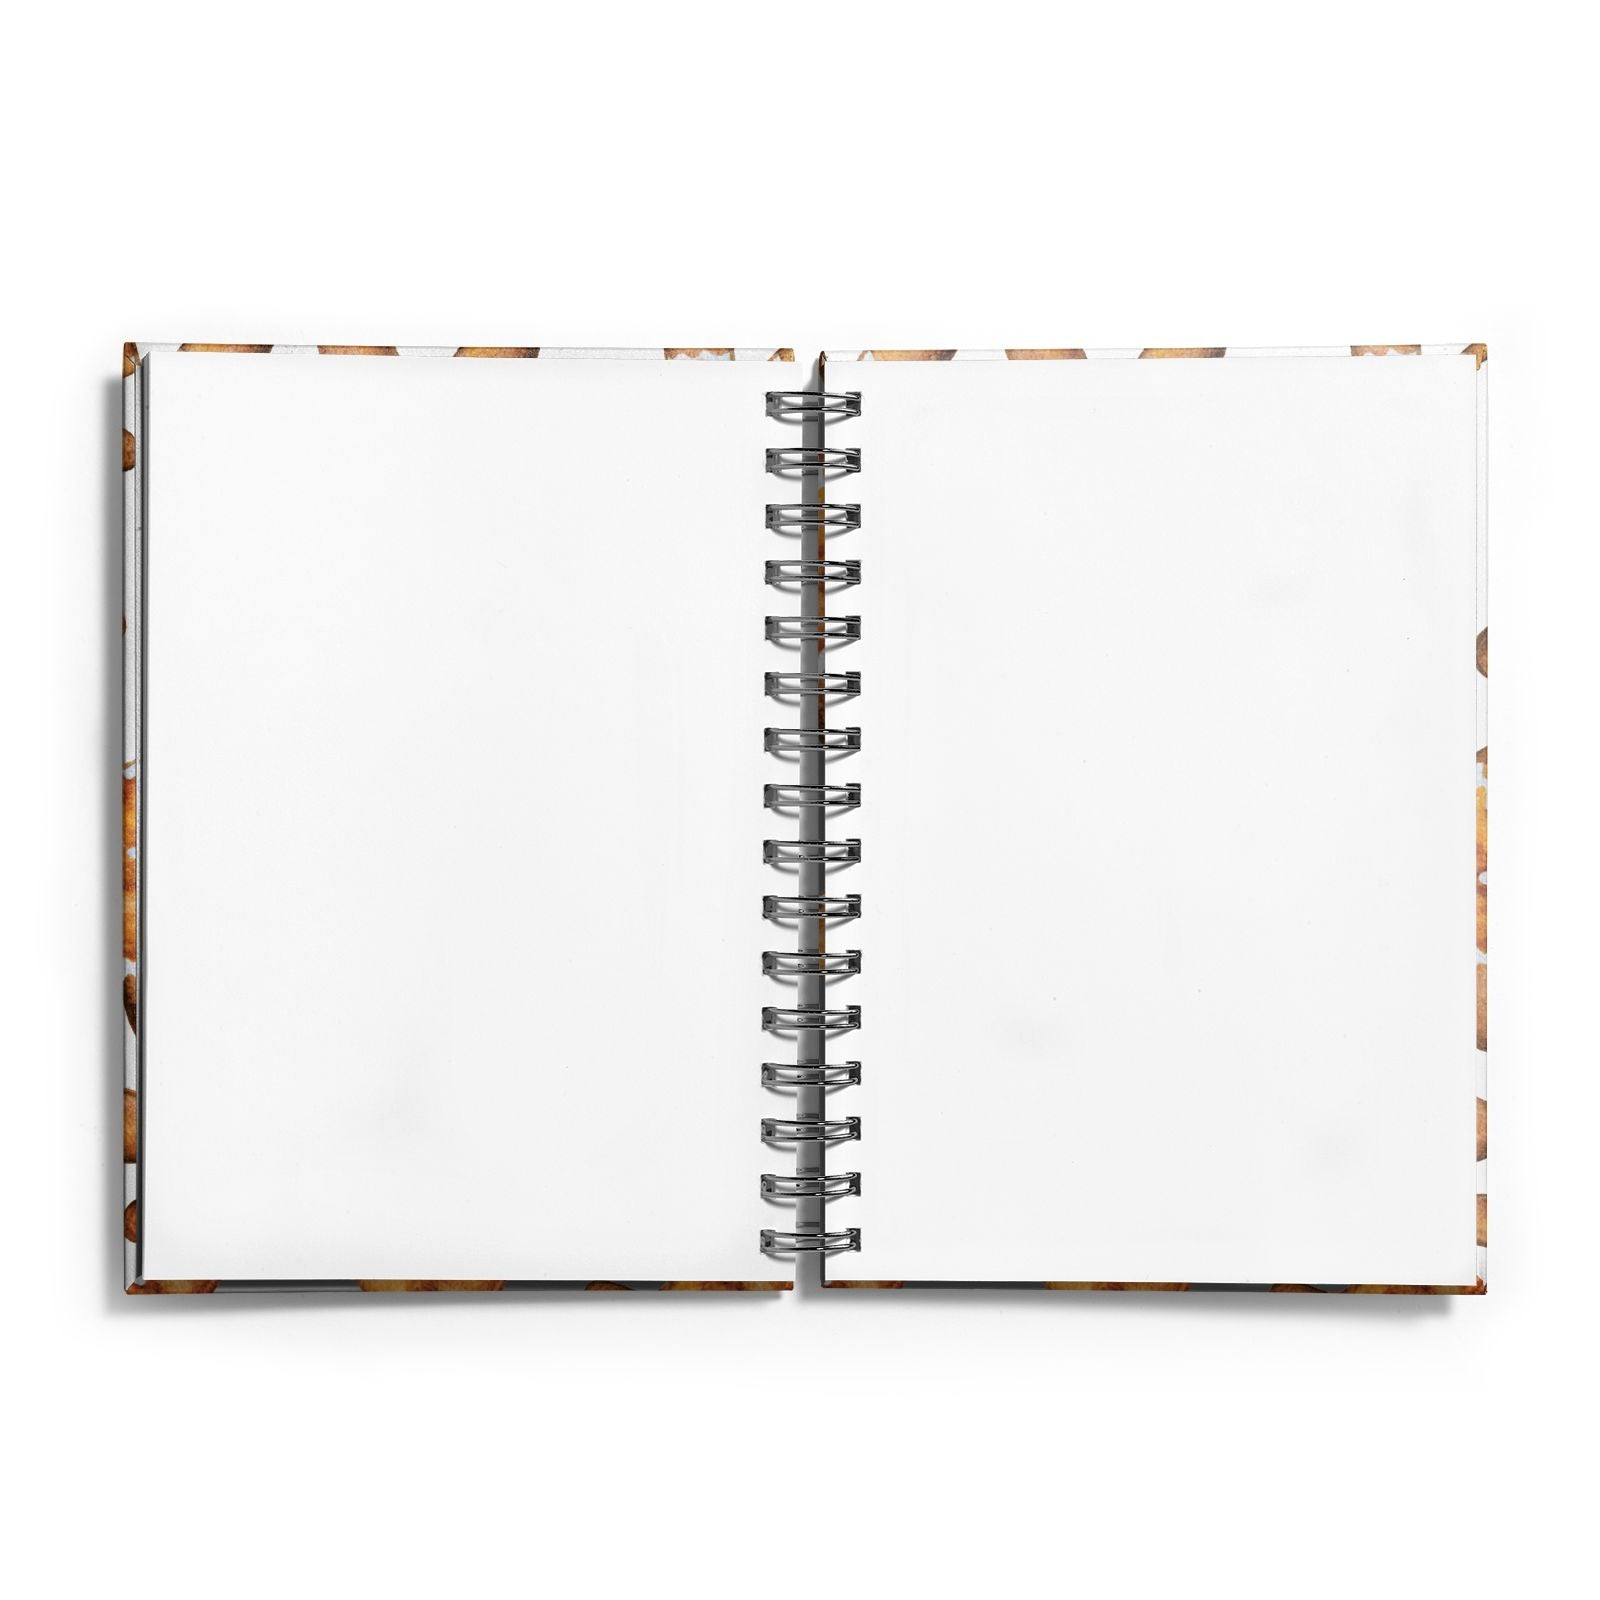 Christmas Gingerbread Man Notebook with Silver Coil and Plain Paper